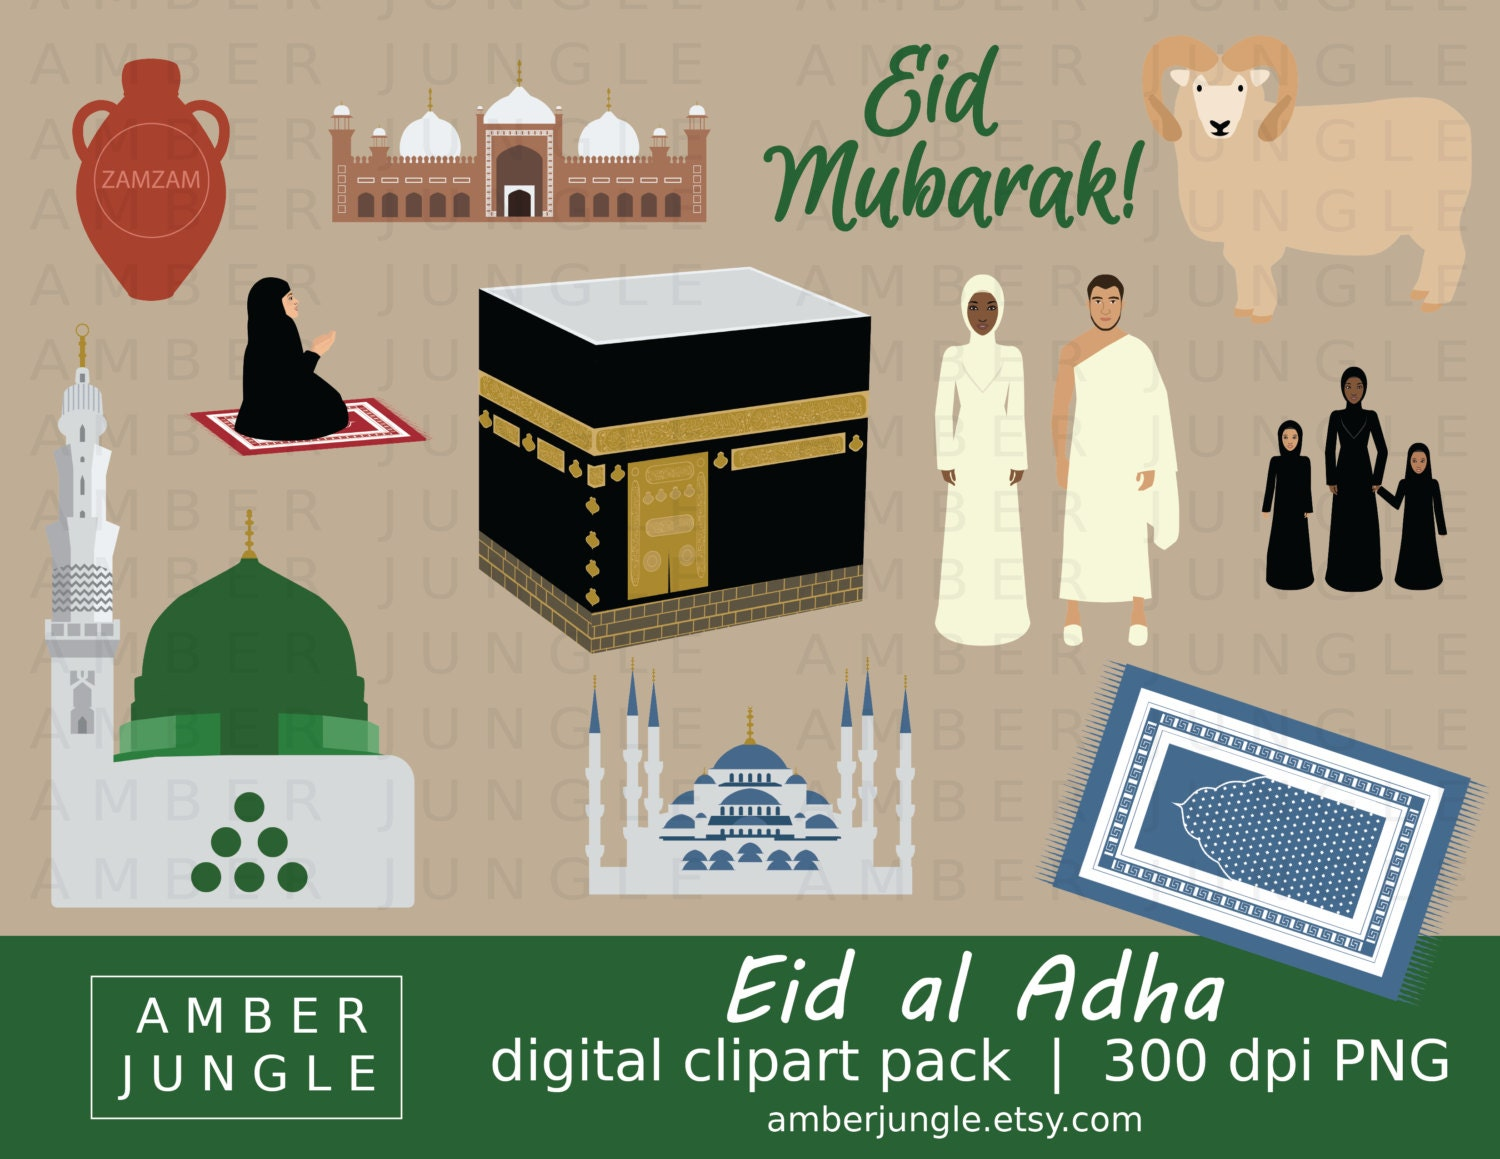 Cool Board Eid Al-Fitr Decorations - il_fullxfull  Pic_33913 .jpg?version\u003d0